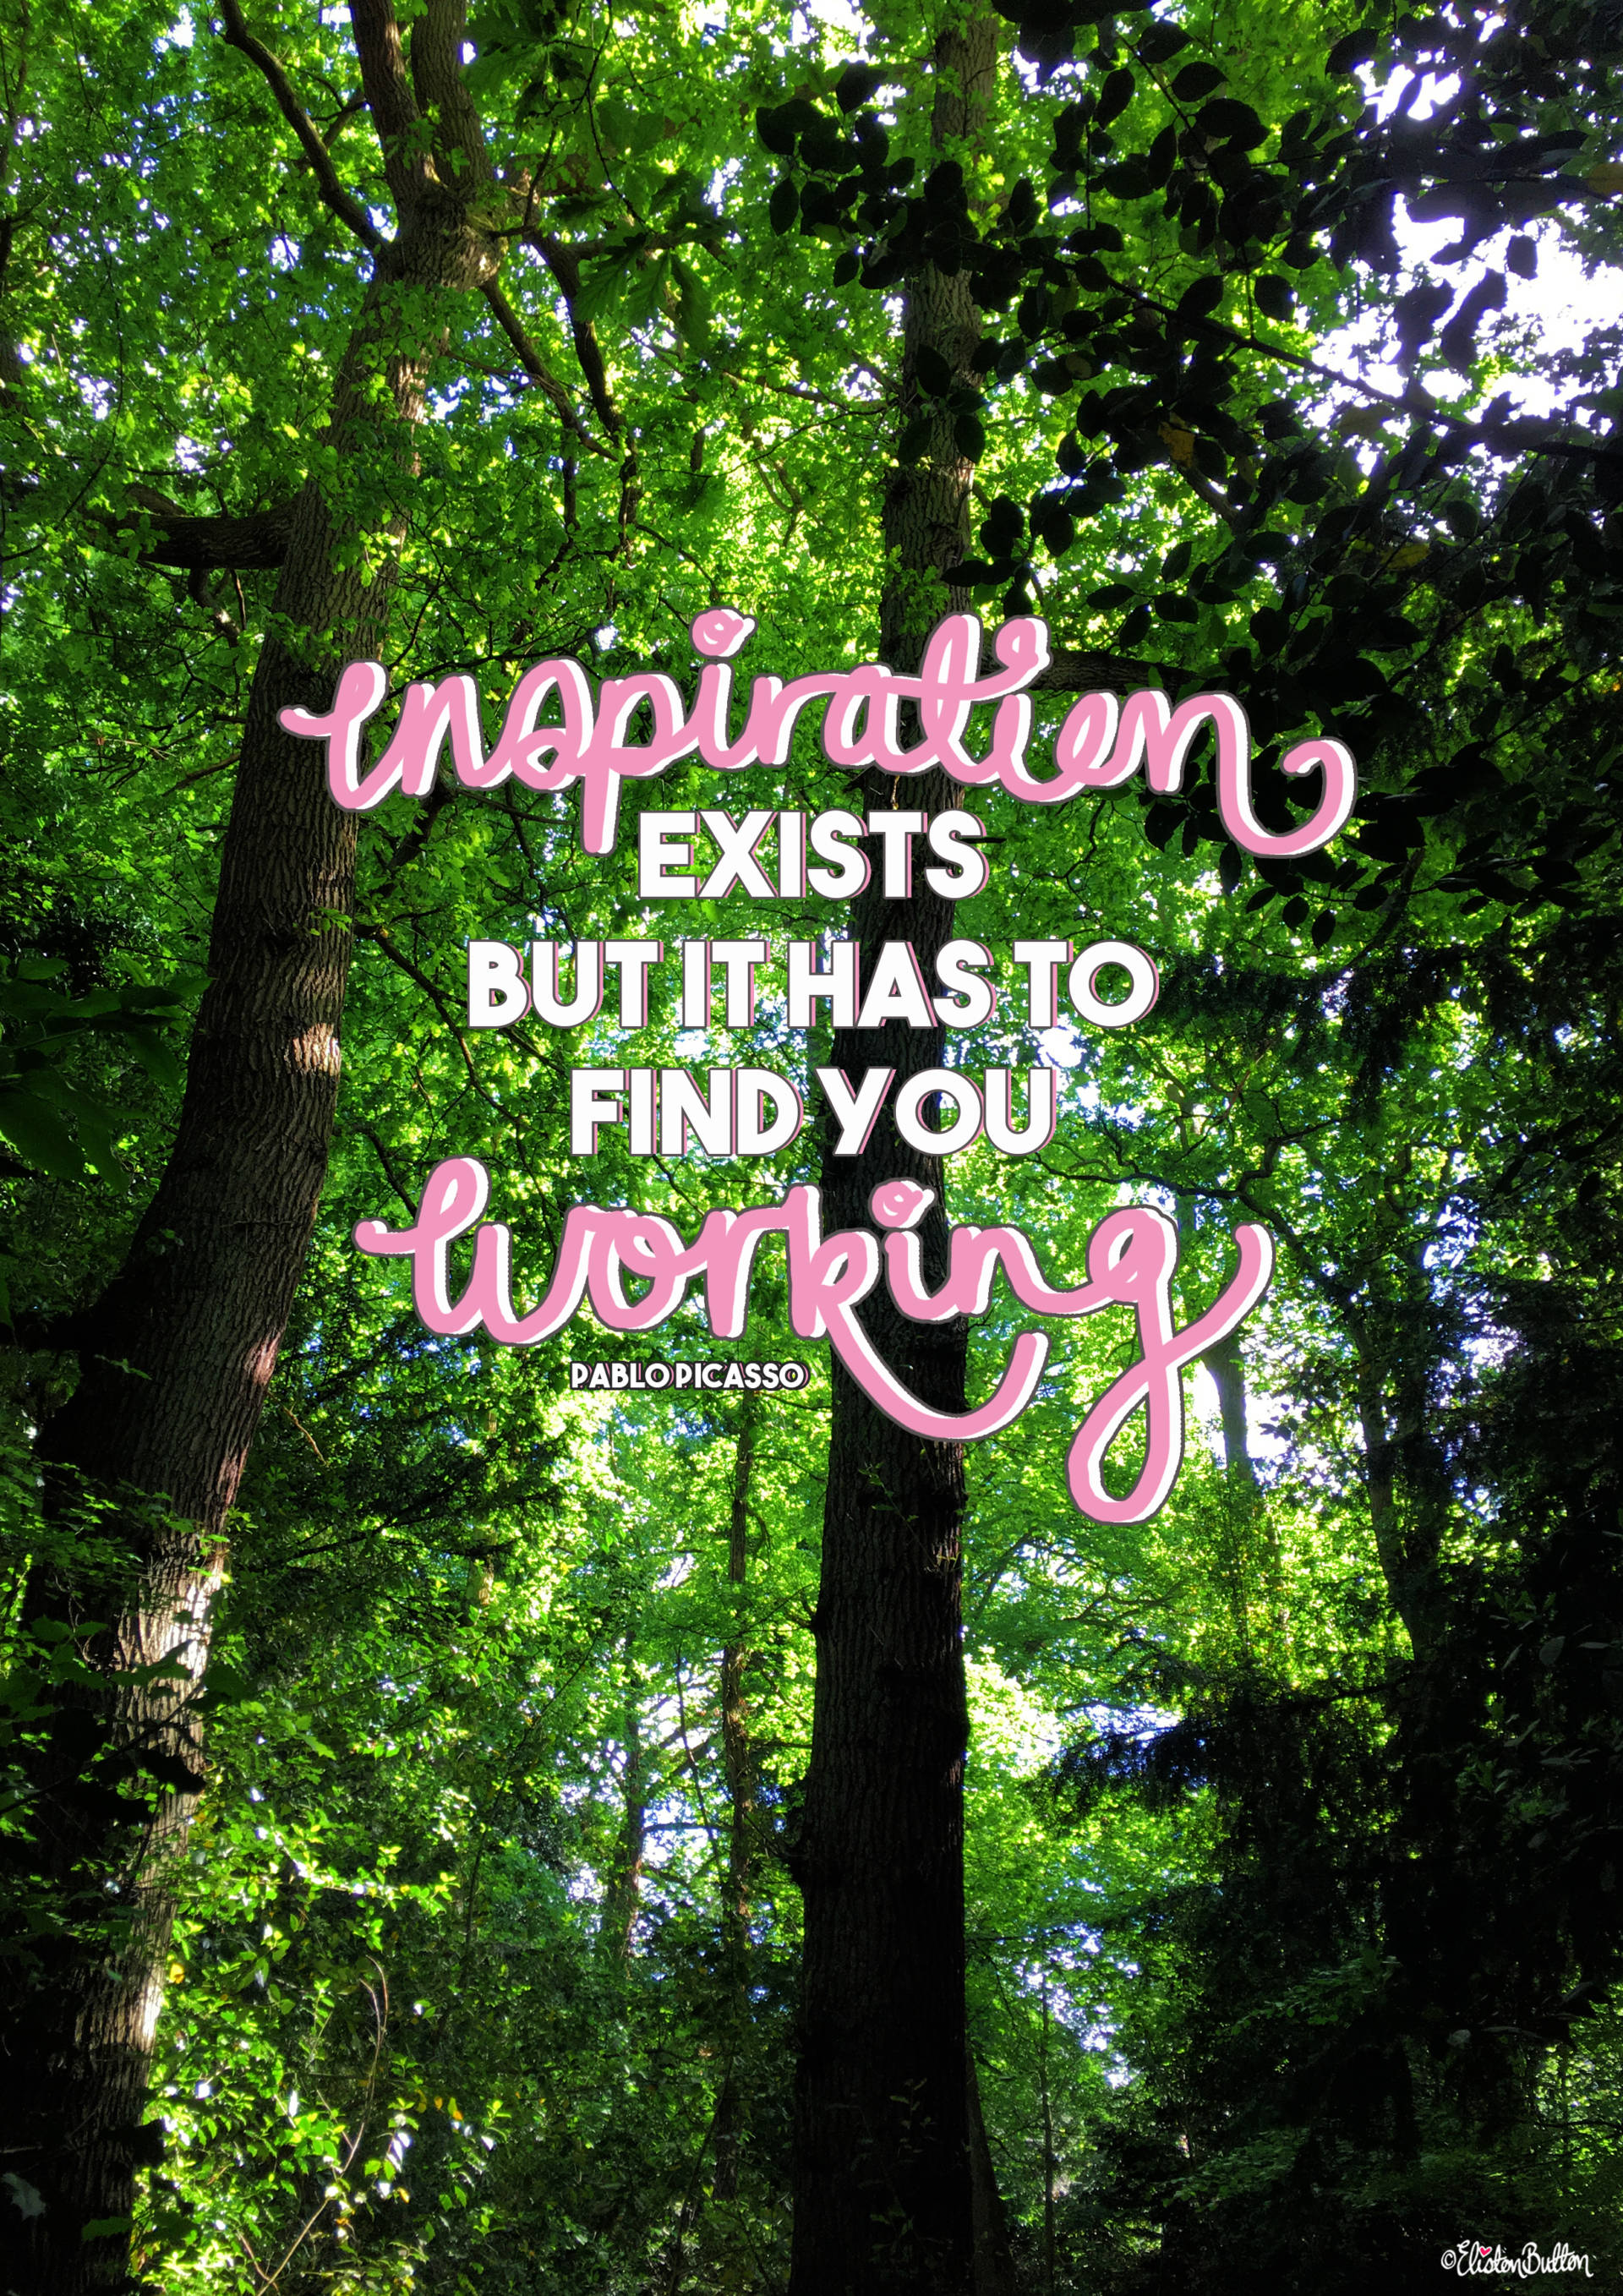 Inspiration Exists But It Has To Find You Working - Pablo Picasso Quote by Eliston Button - Forest - Create 30 – I Did It! (And Future Plans) at www.elistonbutton.com - Eliston Button - That Crafty Kid – Art, Design, Craft & Adventure.